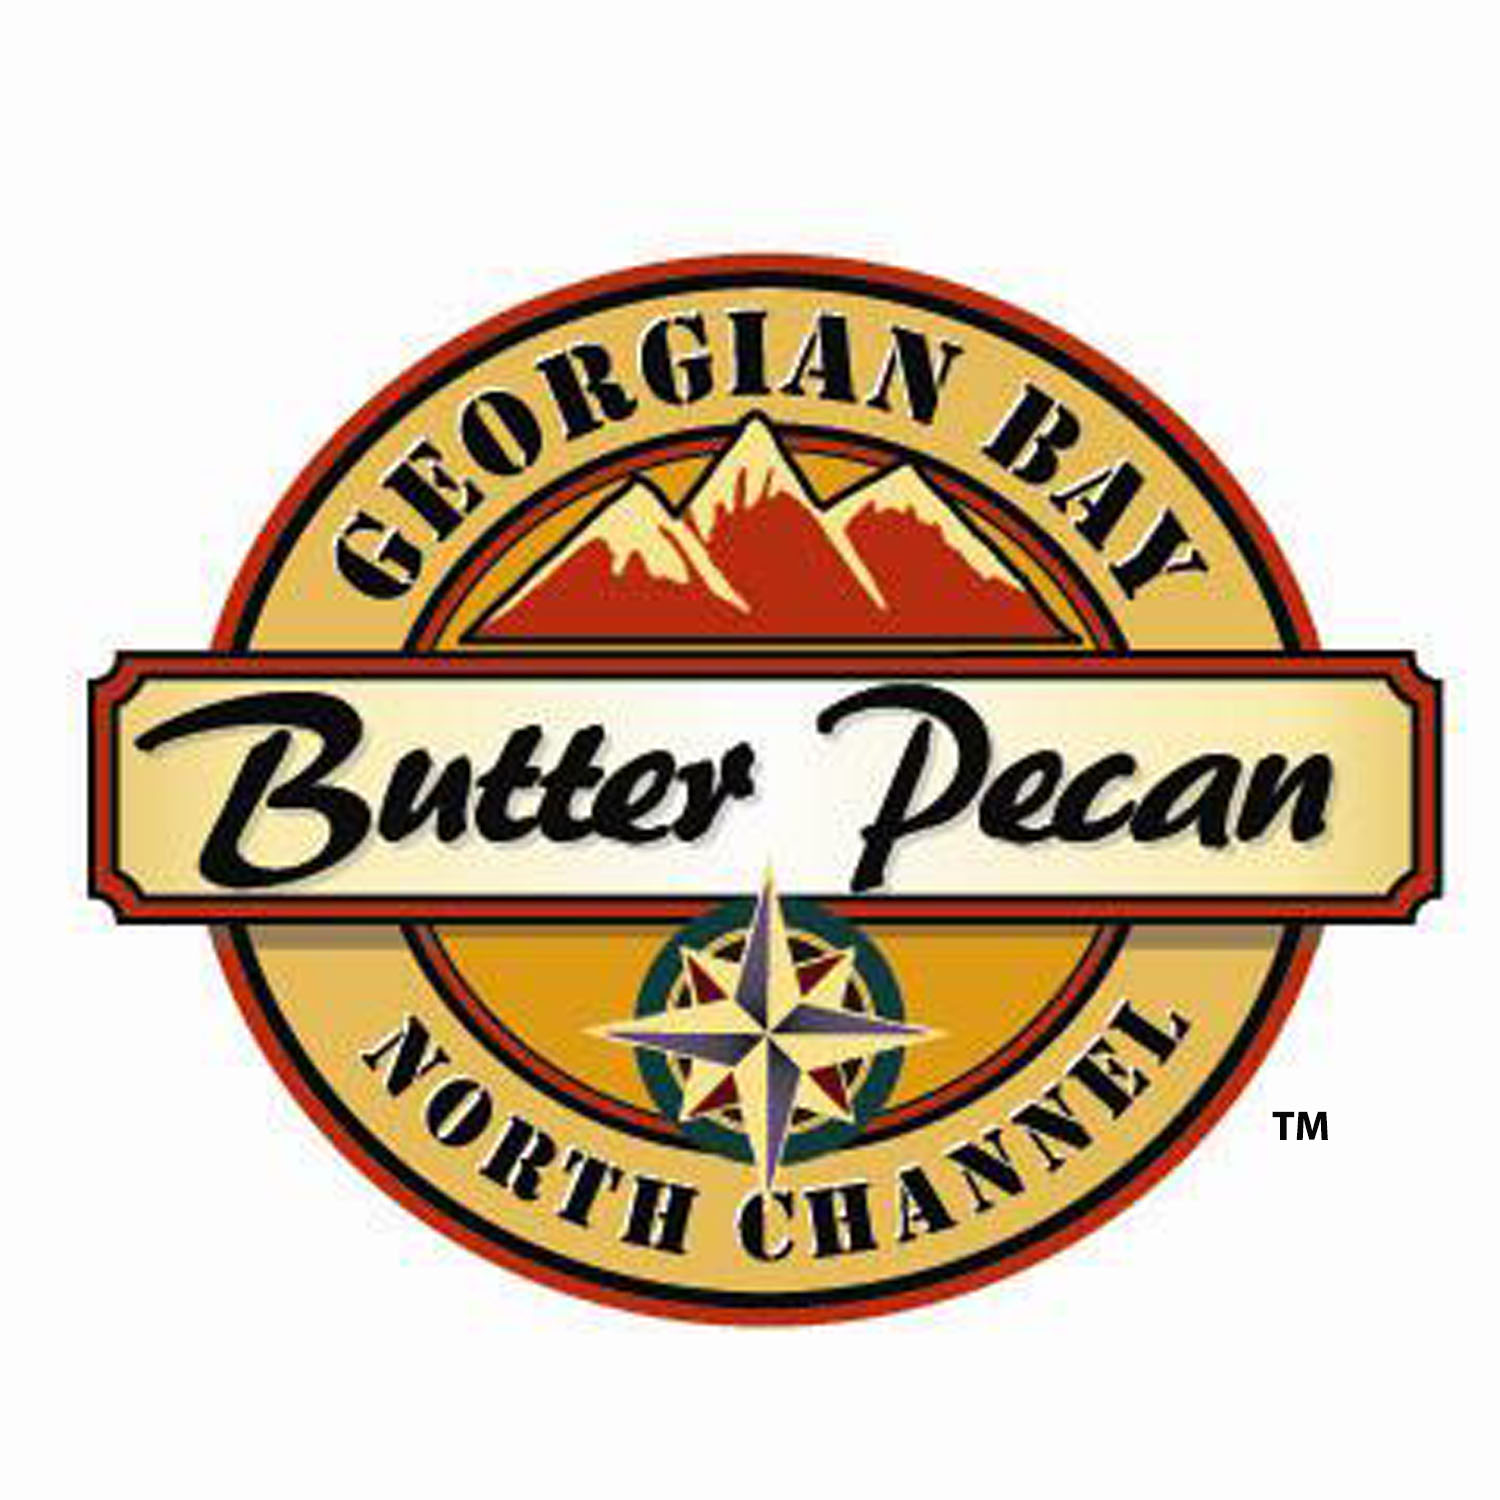 Georgian Bay Butter Pecan